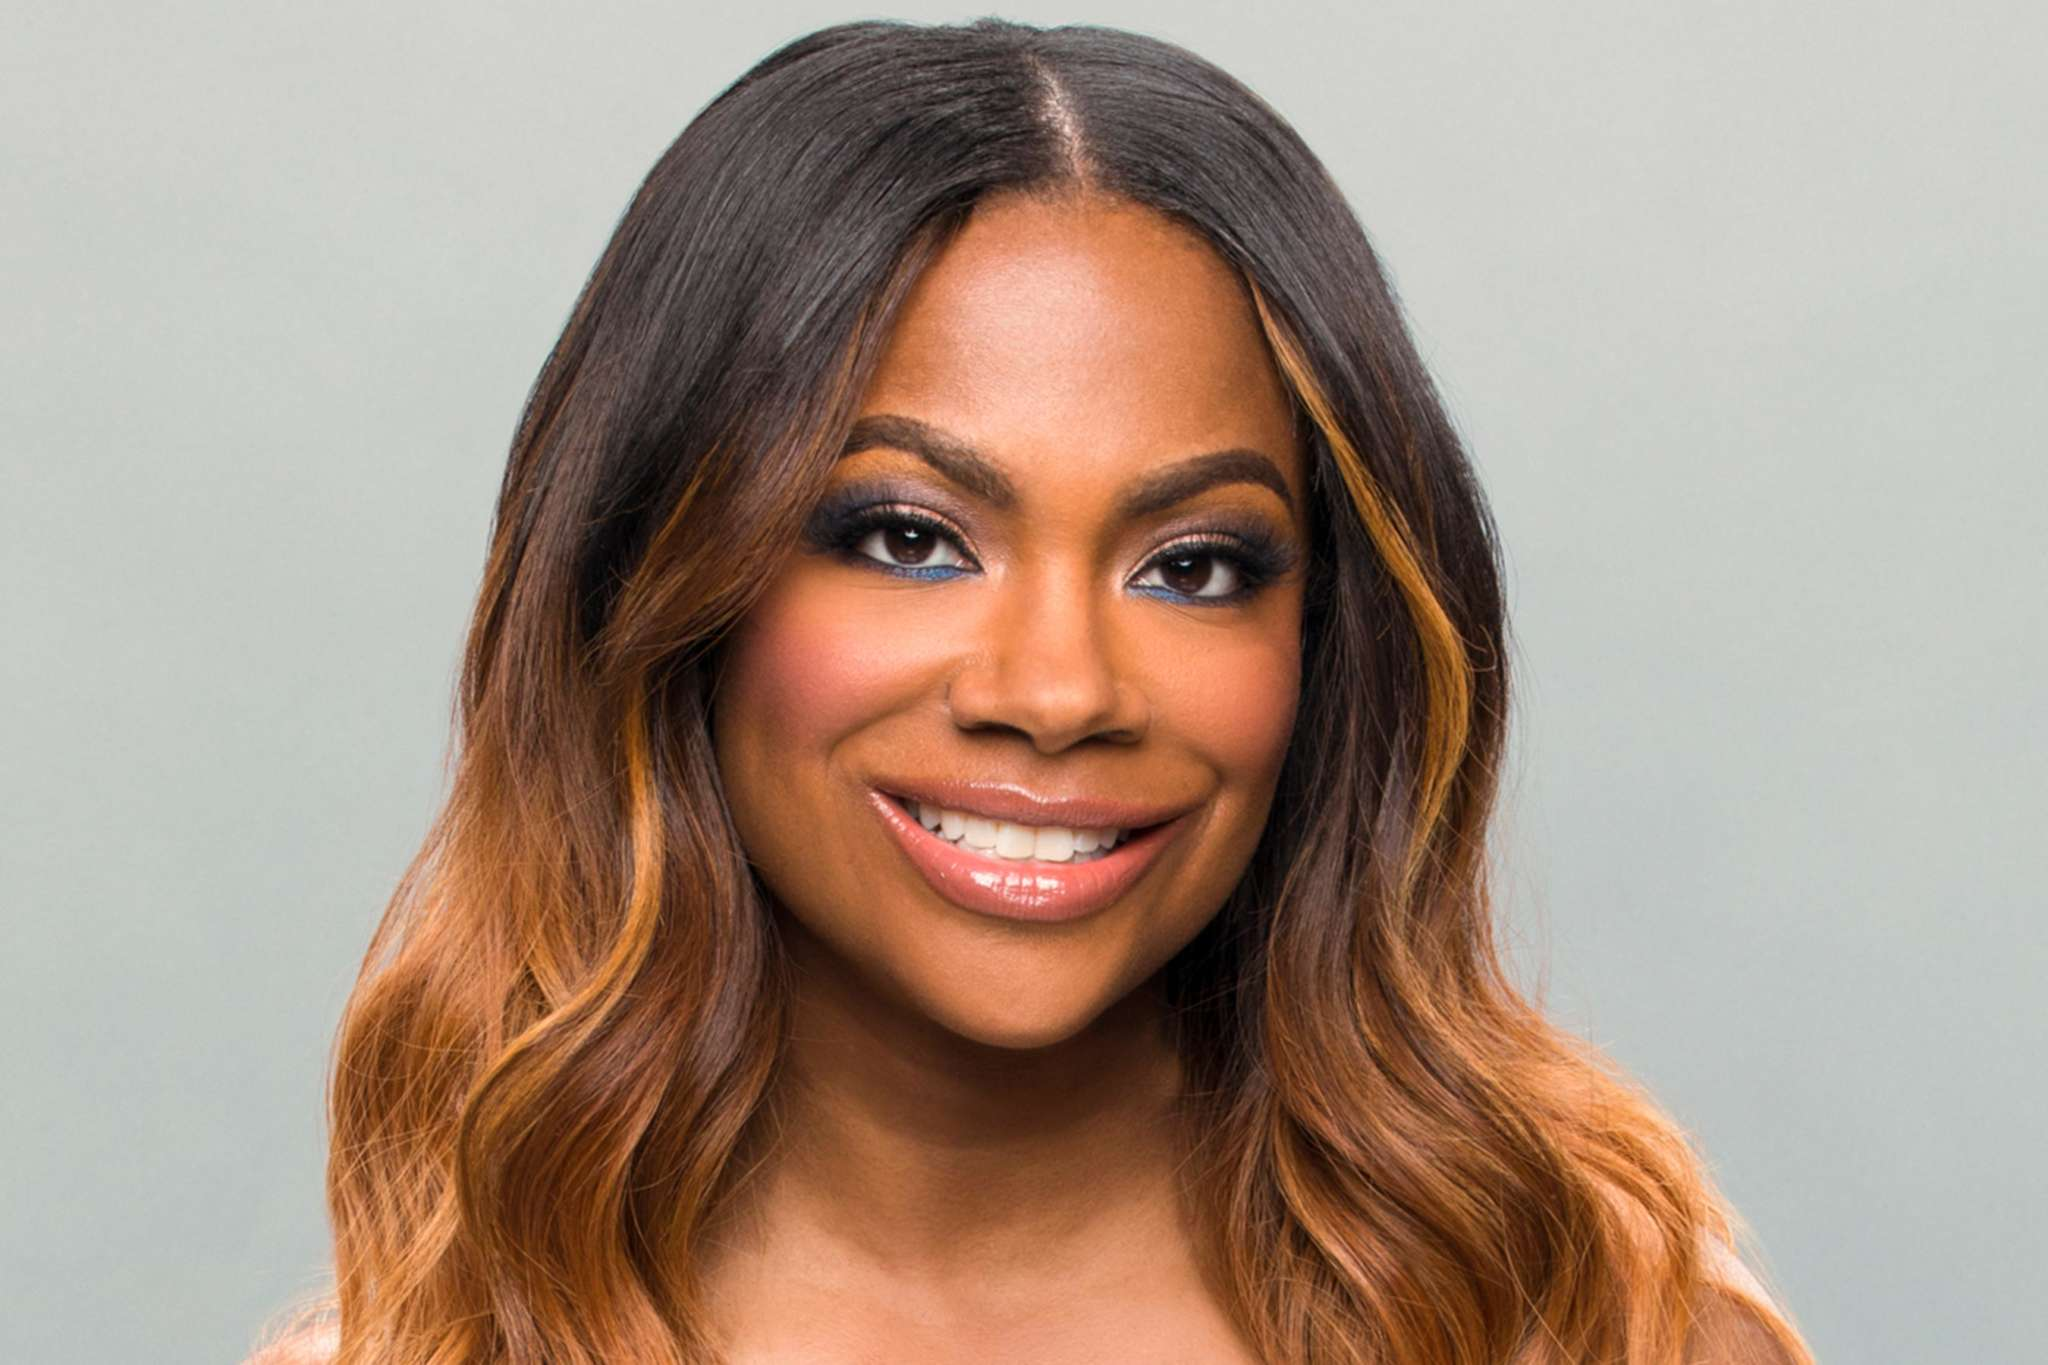 Kandi Burruss Gushes Over The Movie Brian Banks - See Her Message To Fans